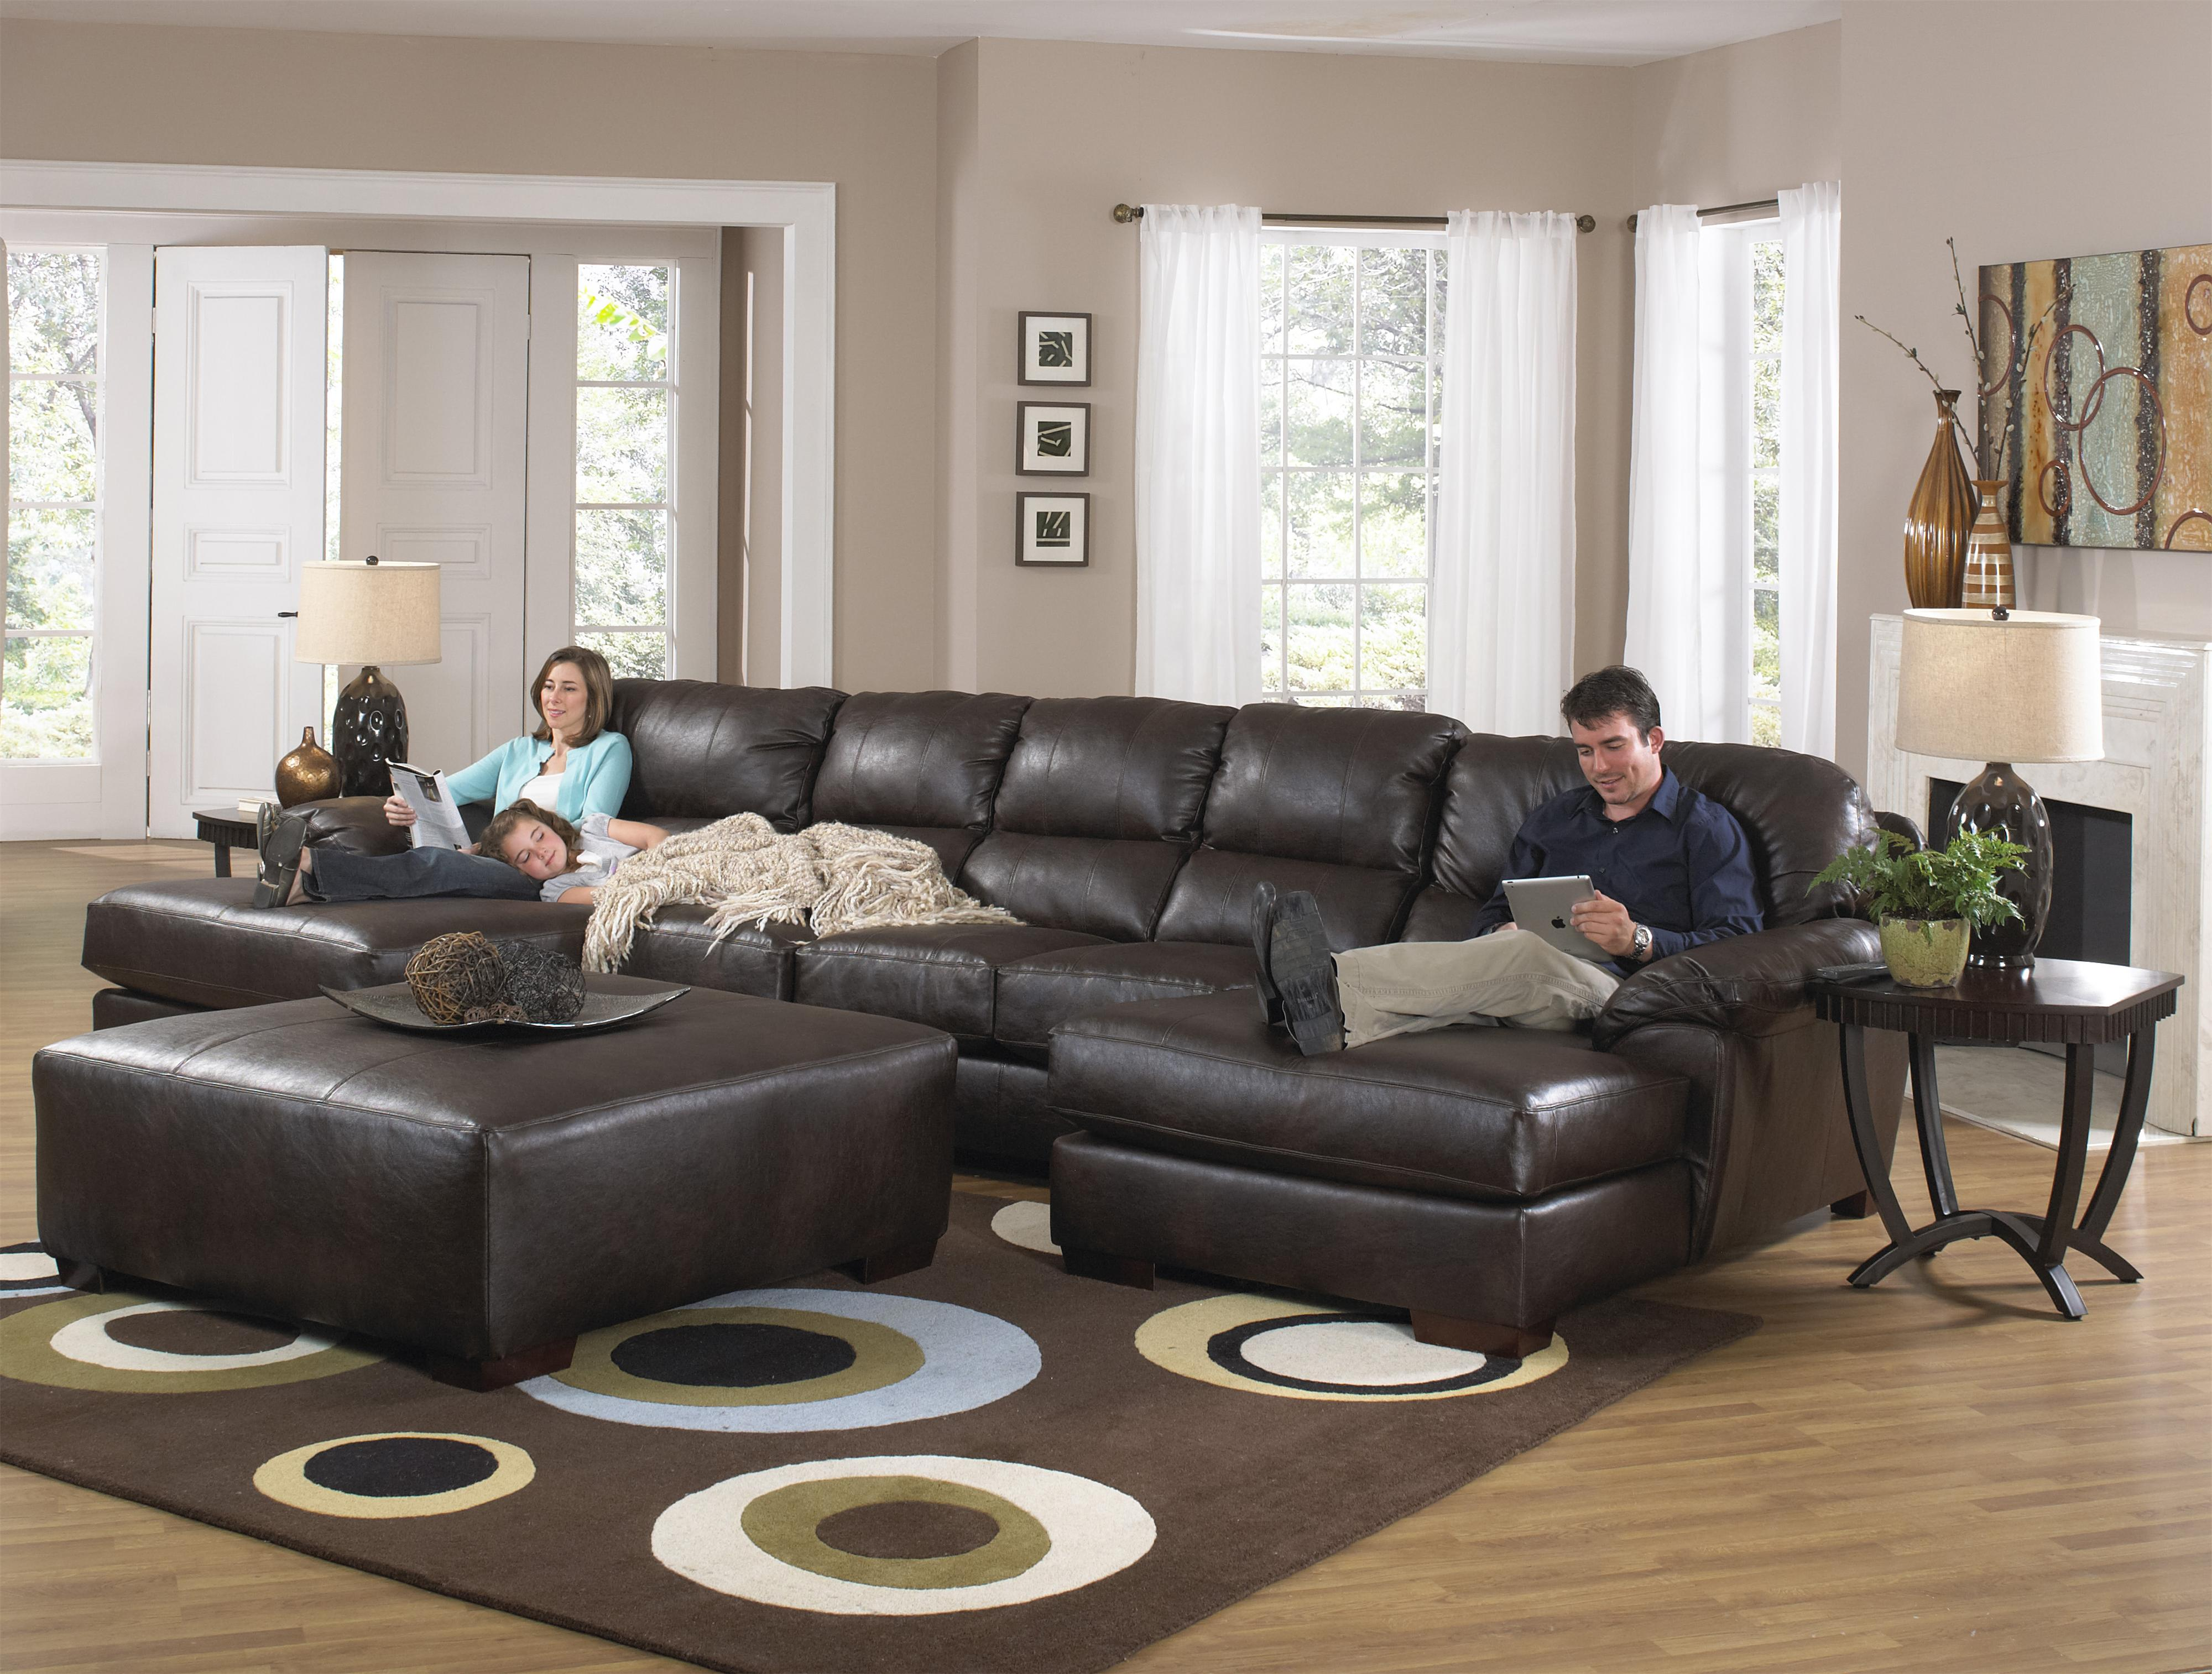 Arranging Sectional In Living Room